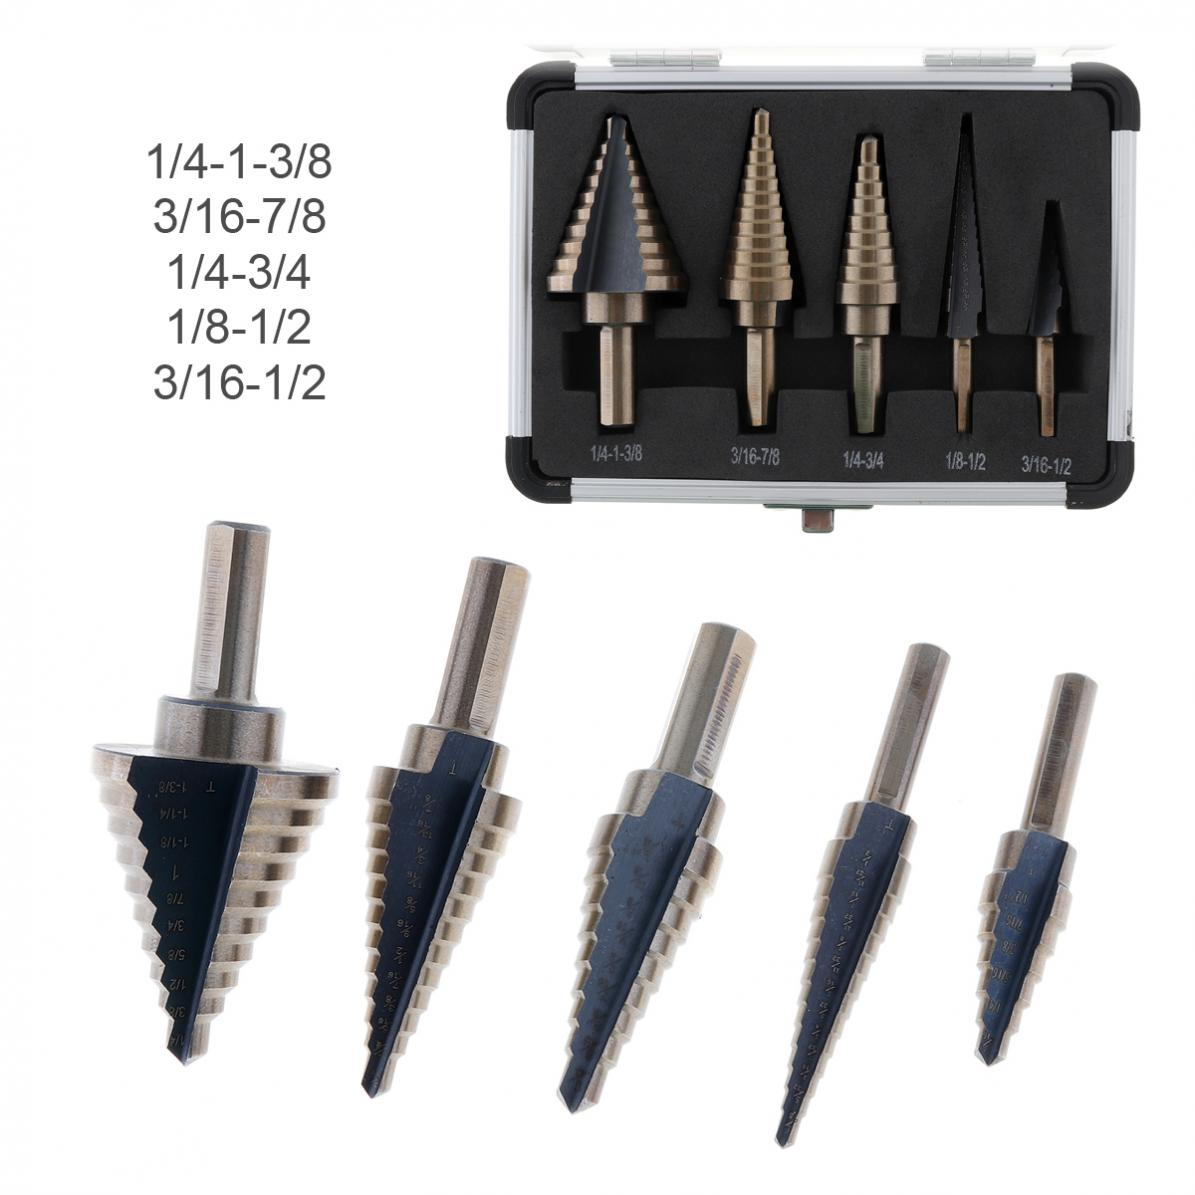 5pcs HSS Steel Step Drill Bit Set Cone Spiral Grooved Drill Bits Multiple Hole of 1/4-1-3/8 3/16-7/8 1/4-3/4 1/8-1/2 3/16-1/2 sunset horseman gobo door led projector light welcome lamp cree q5 ultra bright puddle light for lincoln corvette vw dodge 1527